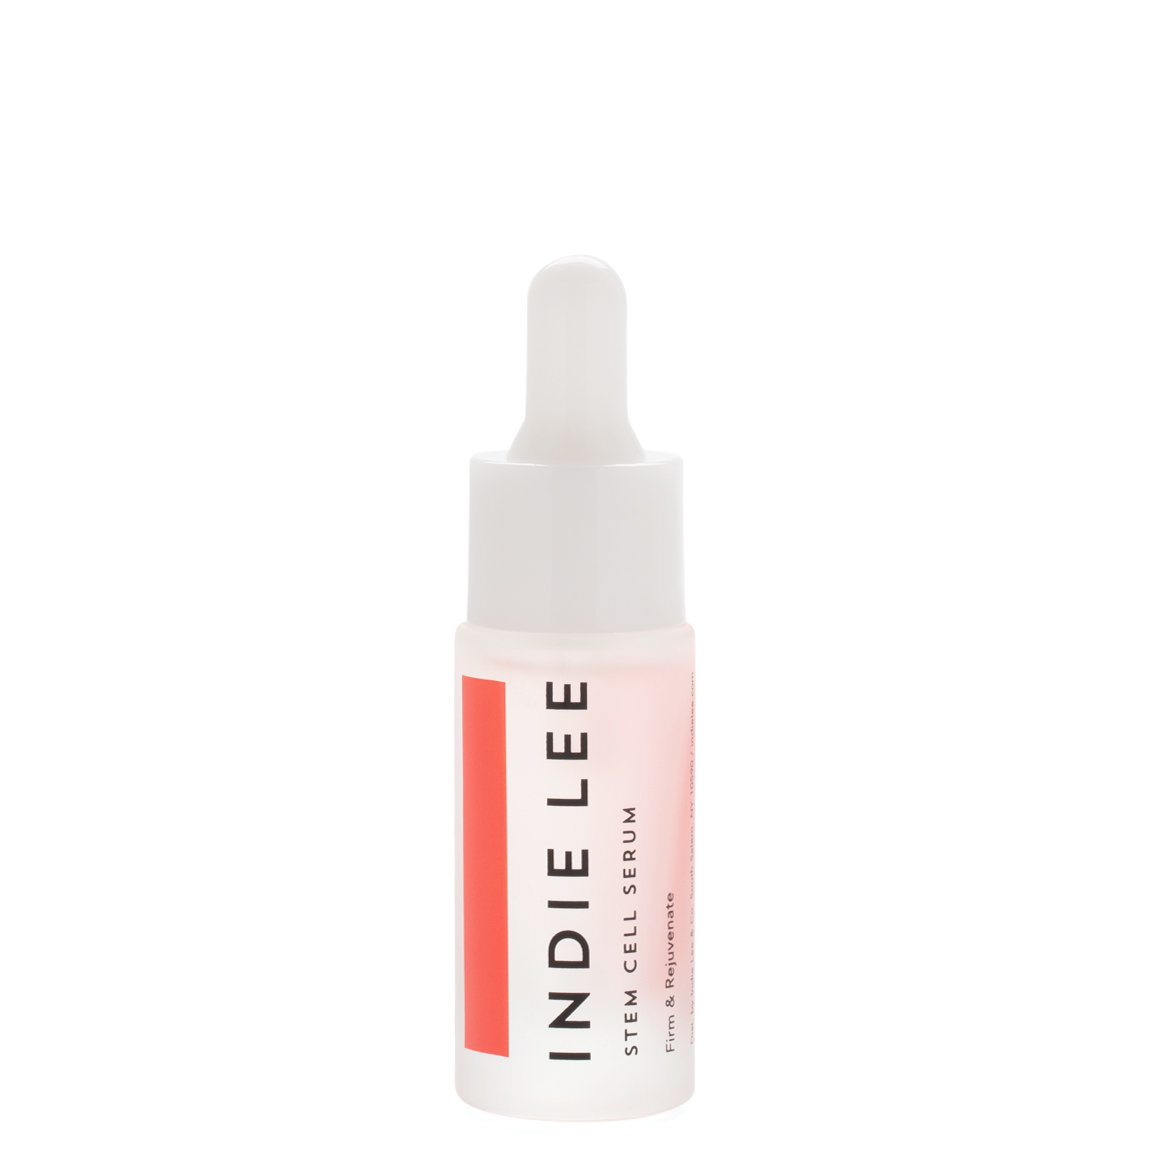 Indie Lee Stem Cell Serum 10 ml product smear.